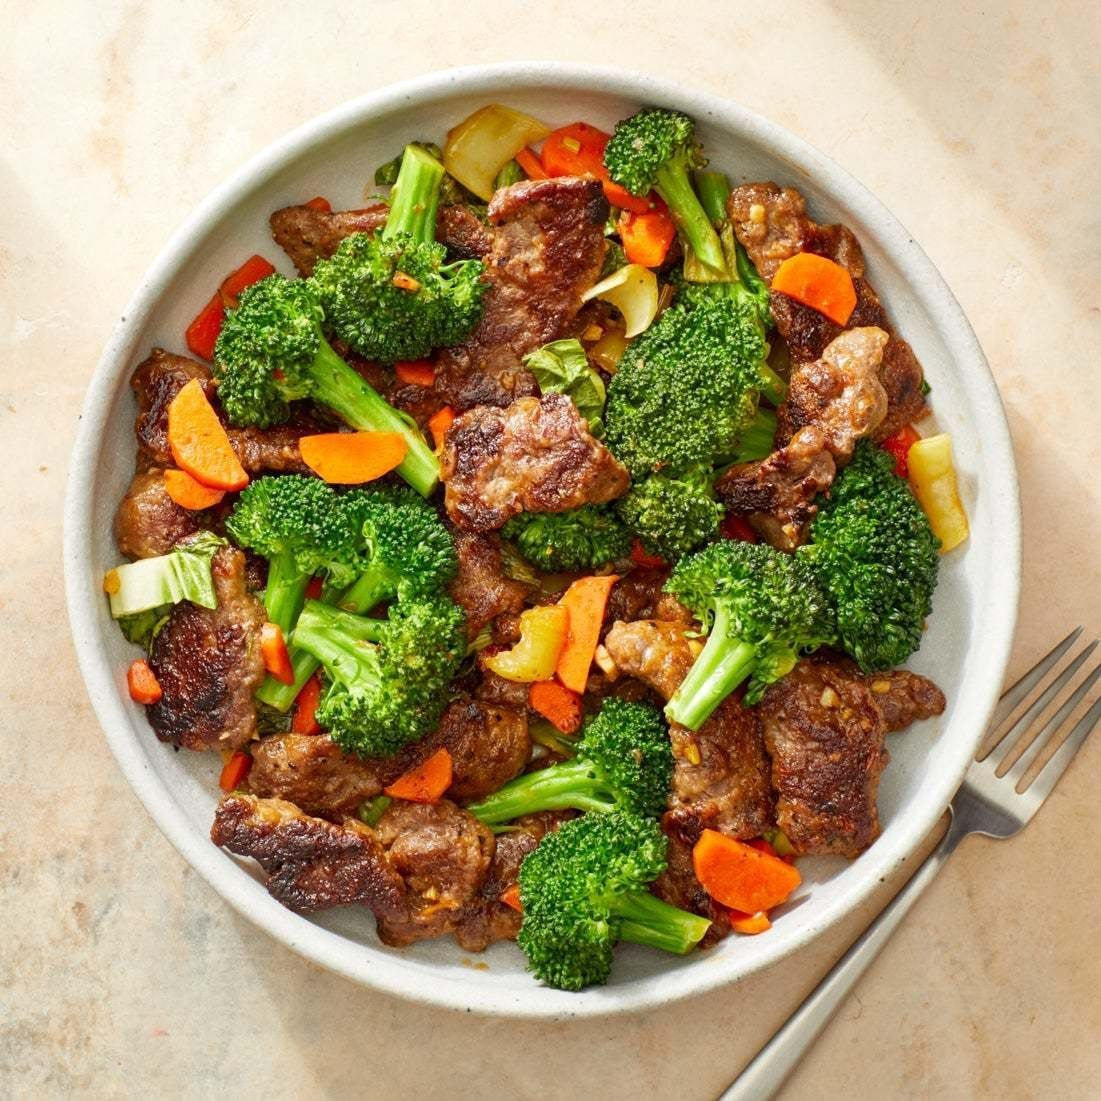 Beef & Vegetable Stir-Fry with Spicy Sambal Sauce #vegetablestirfry Beef & Vegetable Stir-Fry with Spicy Sambal Sauce #stirfrysauce